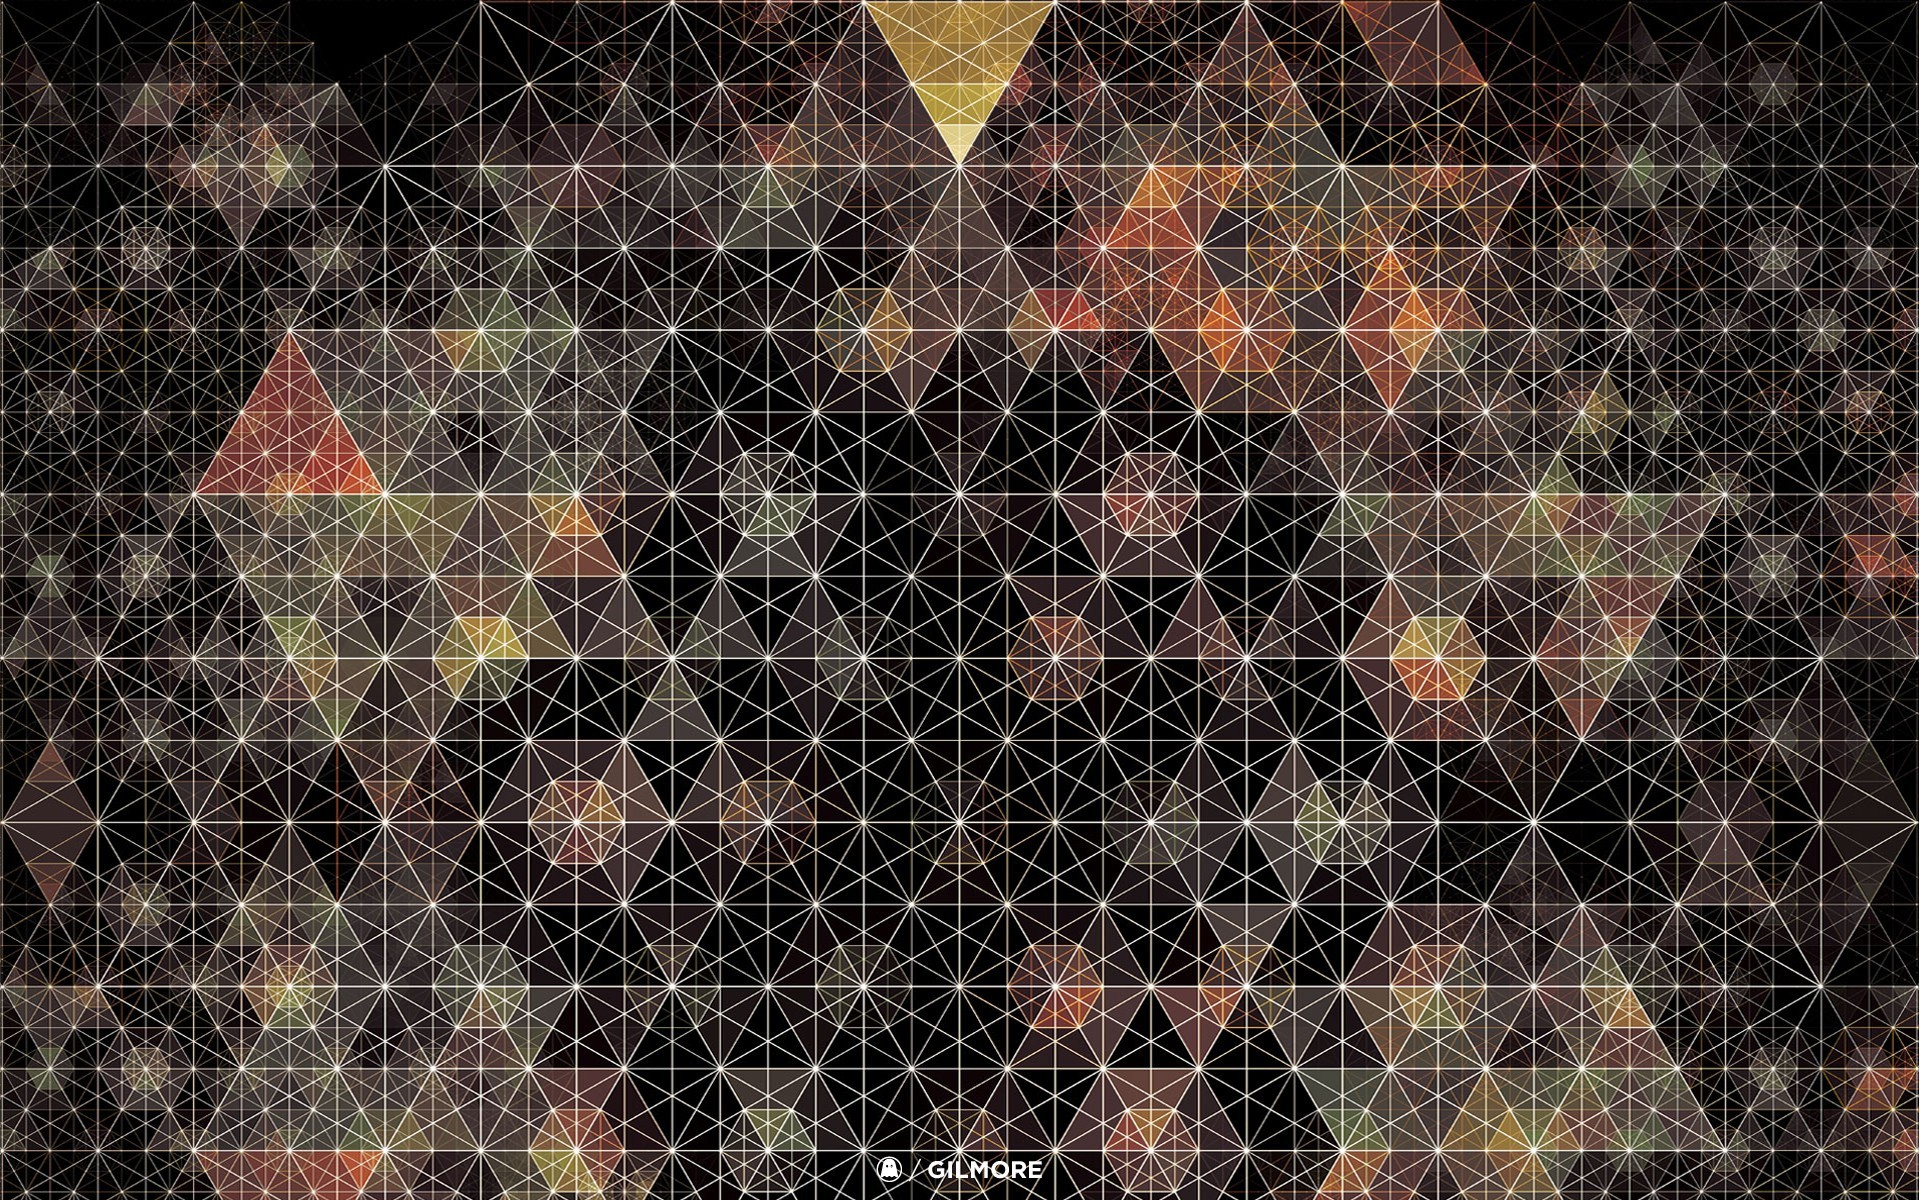 Abstract Psychedelic Geometry Fresh New HD Wallpaper Best Quality | HD  Wallpaper Download #12853